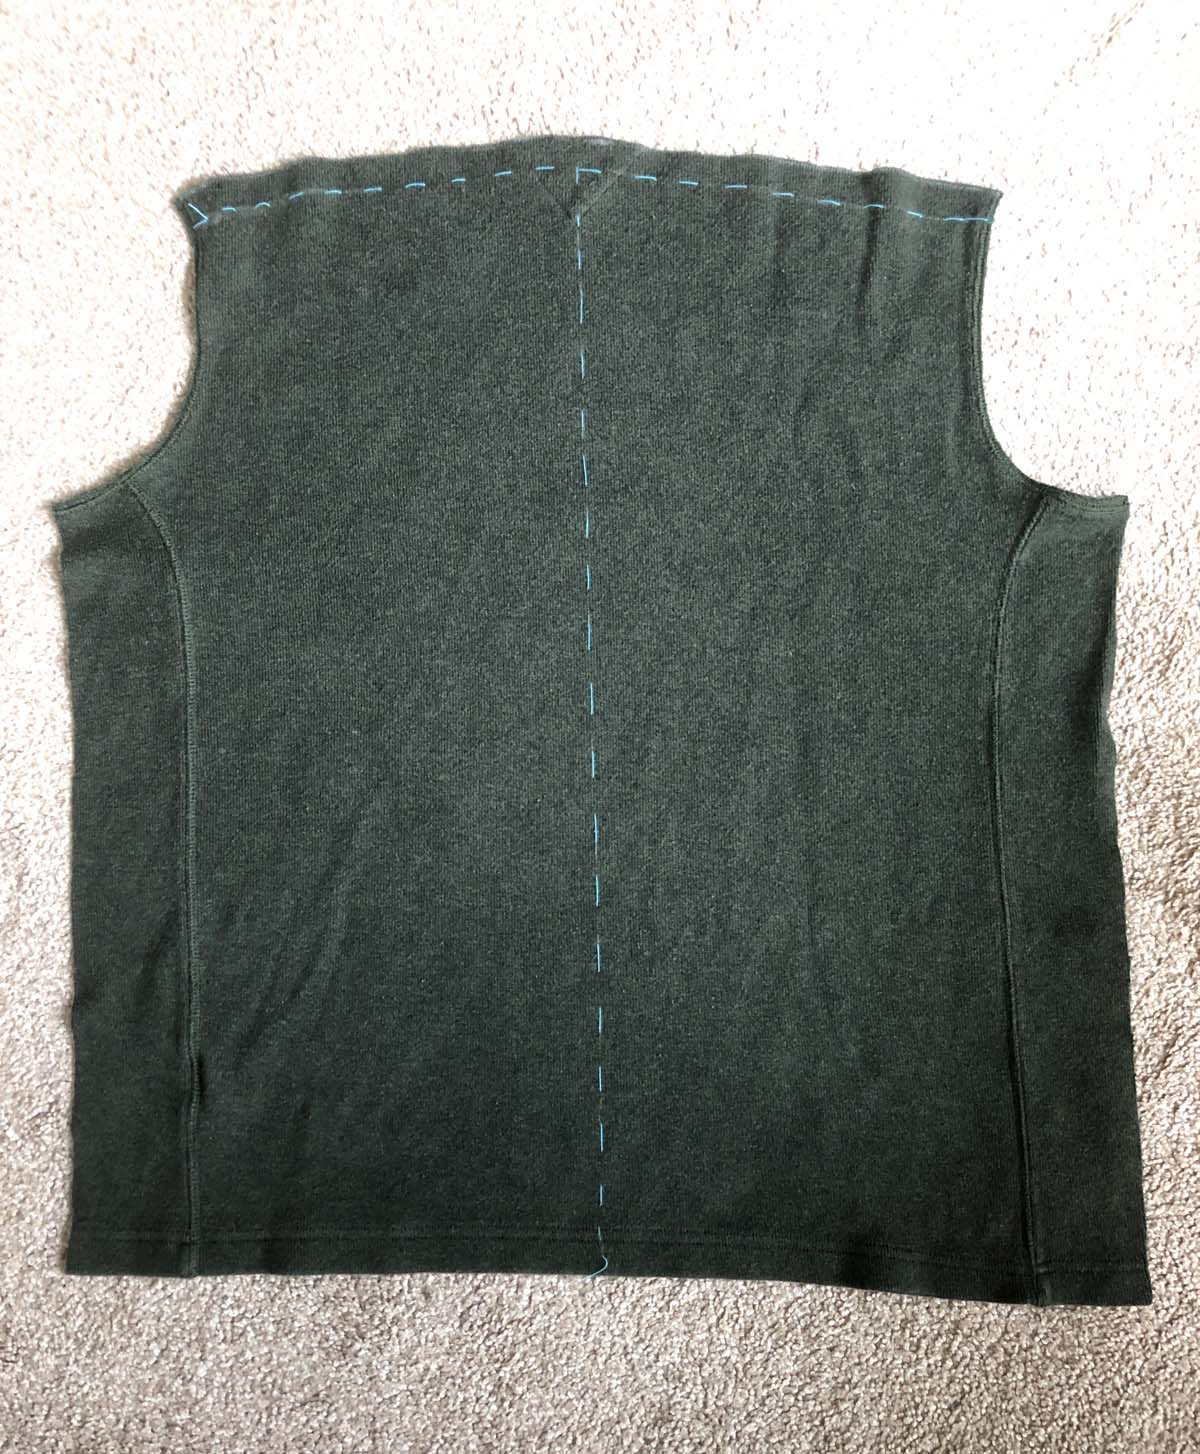 Center back and seam allowance along top edge marked on olive green sweater back